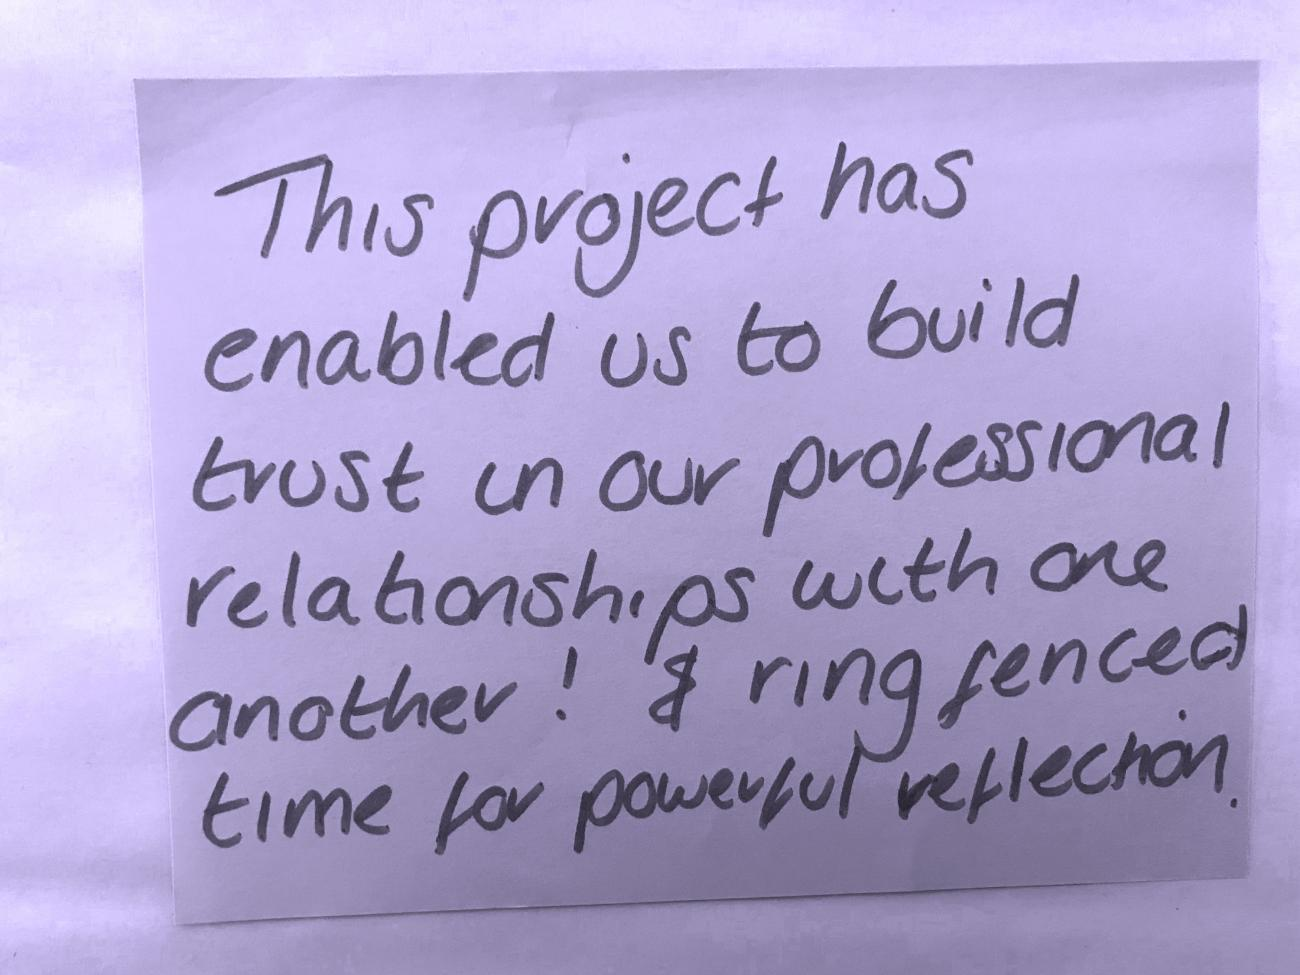 this project has enabled us to build trust in our professional relationships with one another! & ring fenced time for powerful reflection